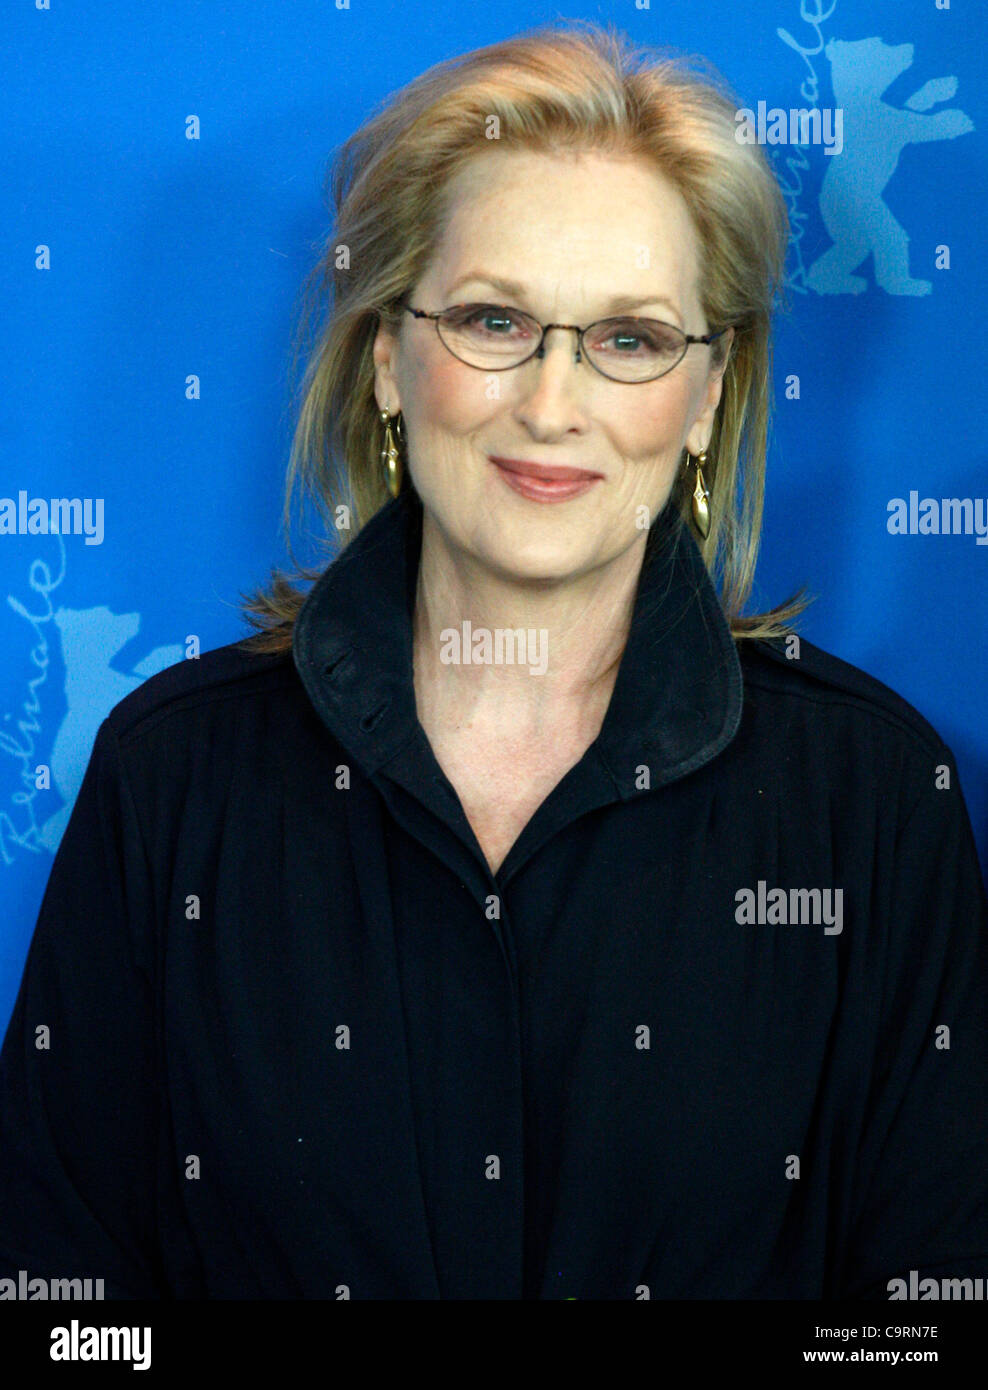 14 February 2012 Berlin Germany. Actress MERYL STREEP poses for photographers at the photocall for the film 'The - Stock Image